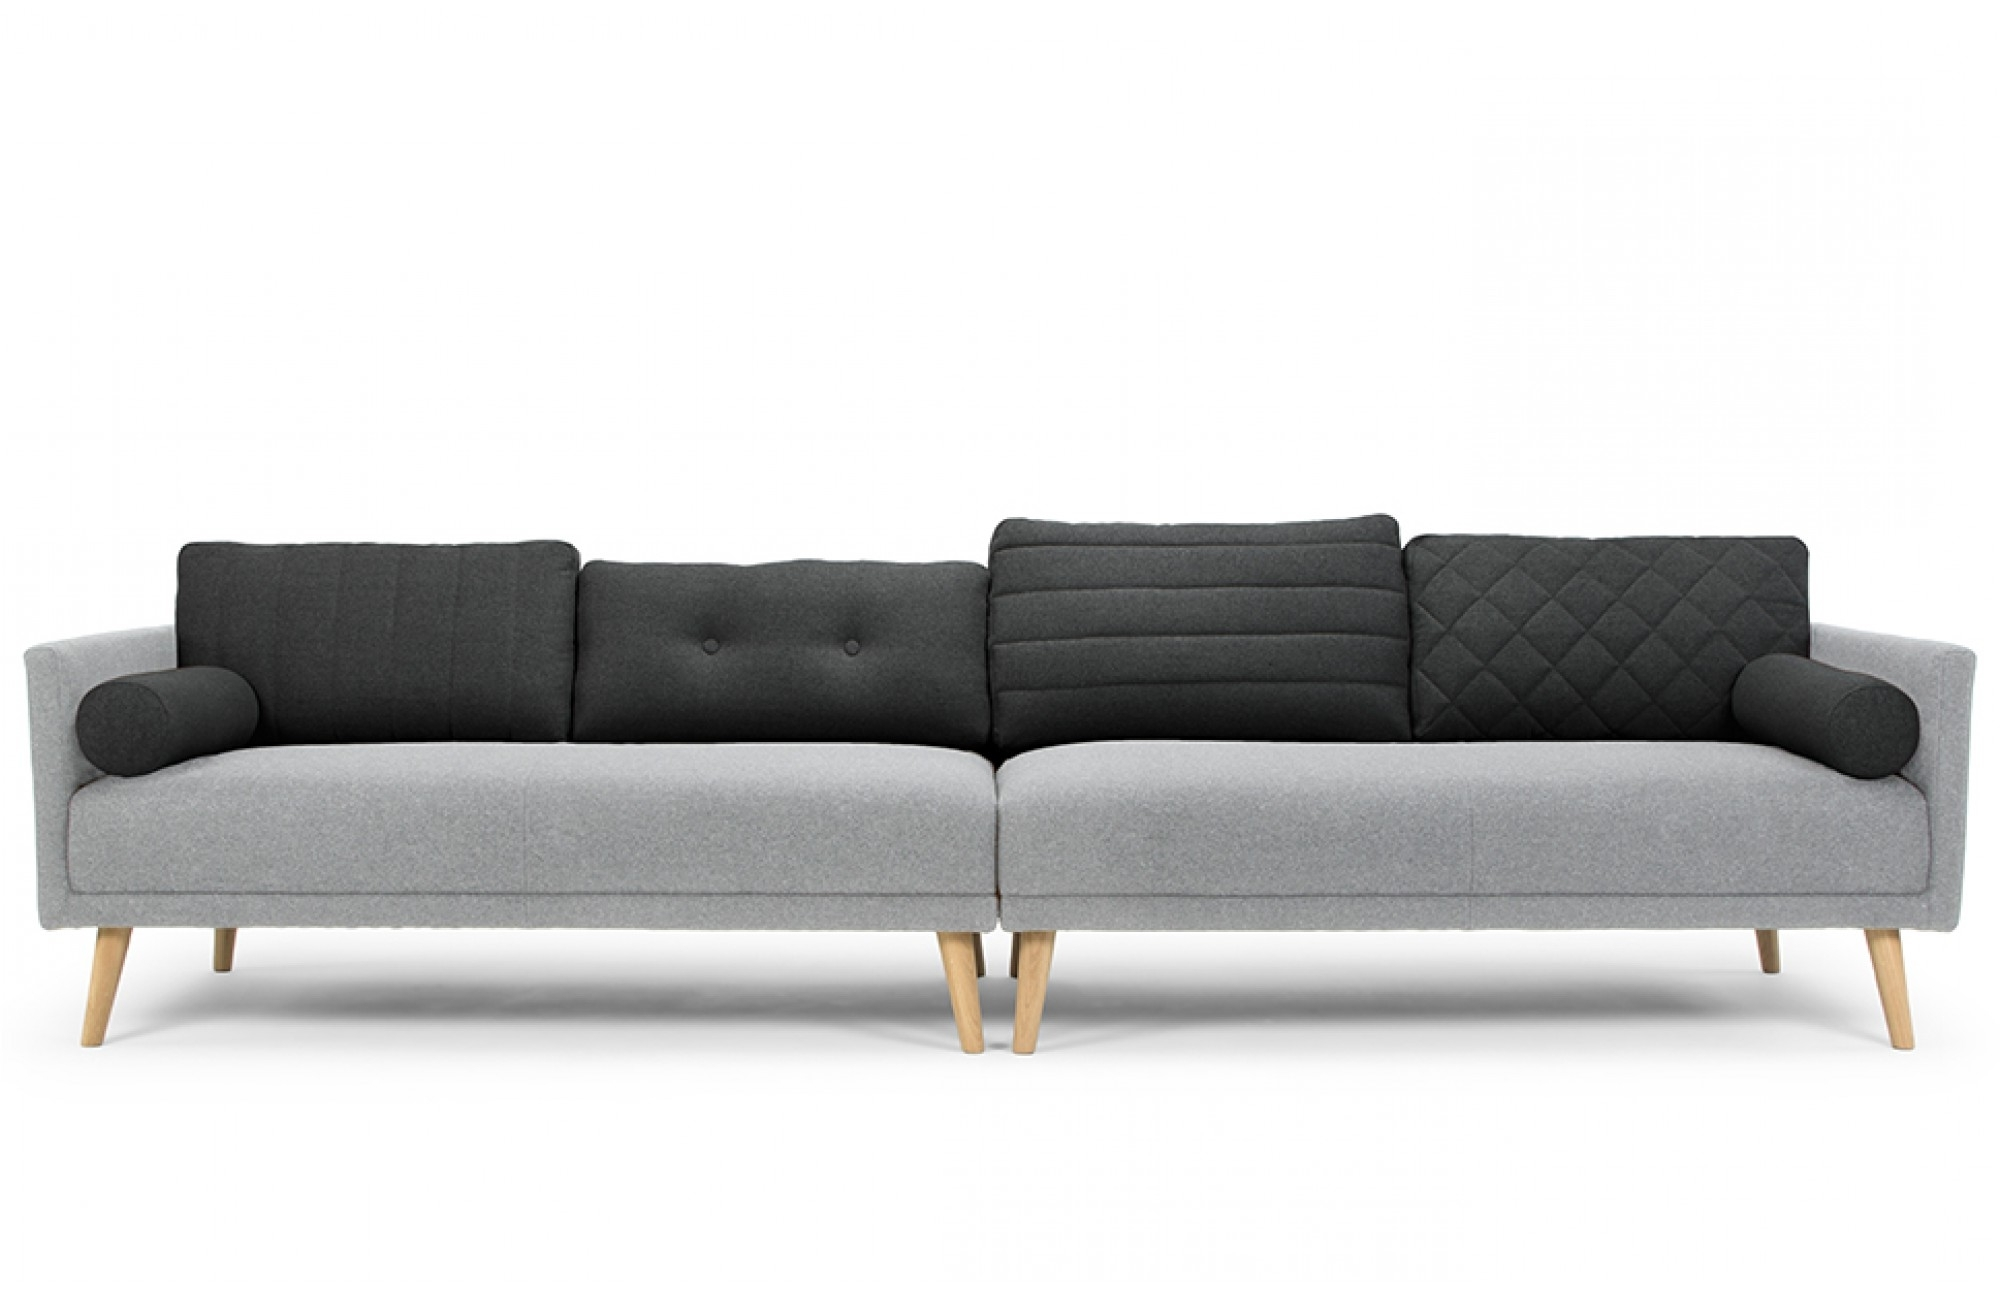 4 Seat Sofas Inside Well Liked Grey 4 Seater Sofa – Lounge Furniture – Out & Out Original (View 7 of 20)